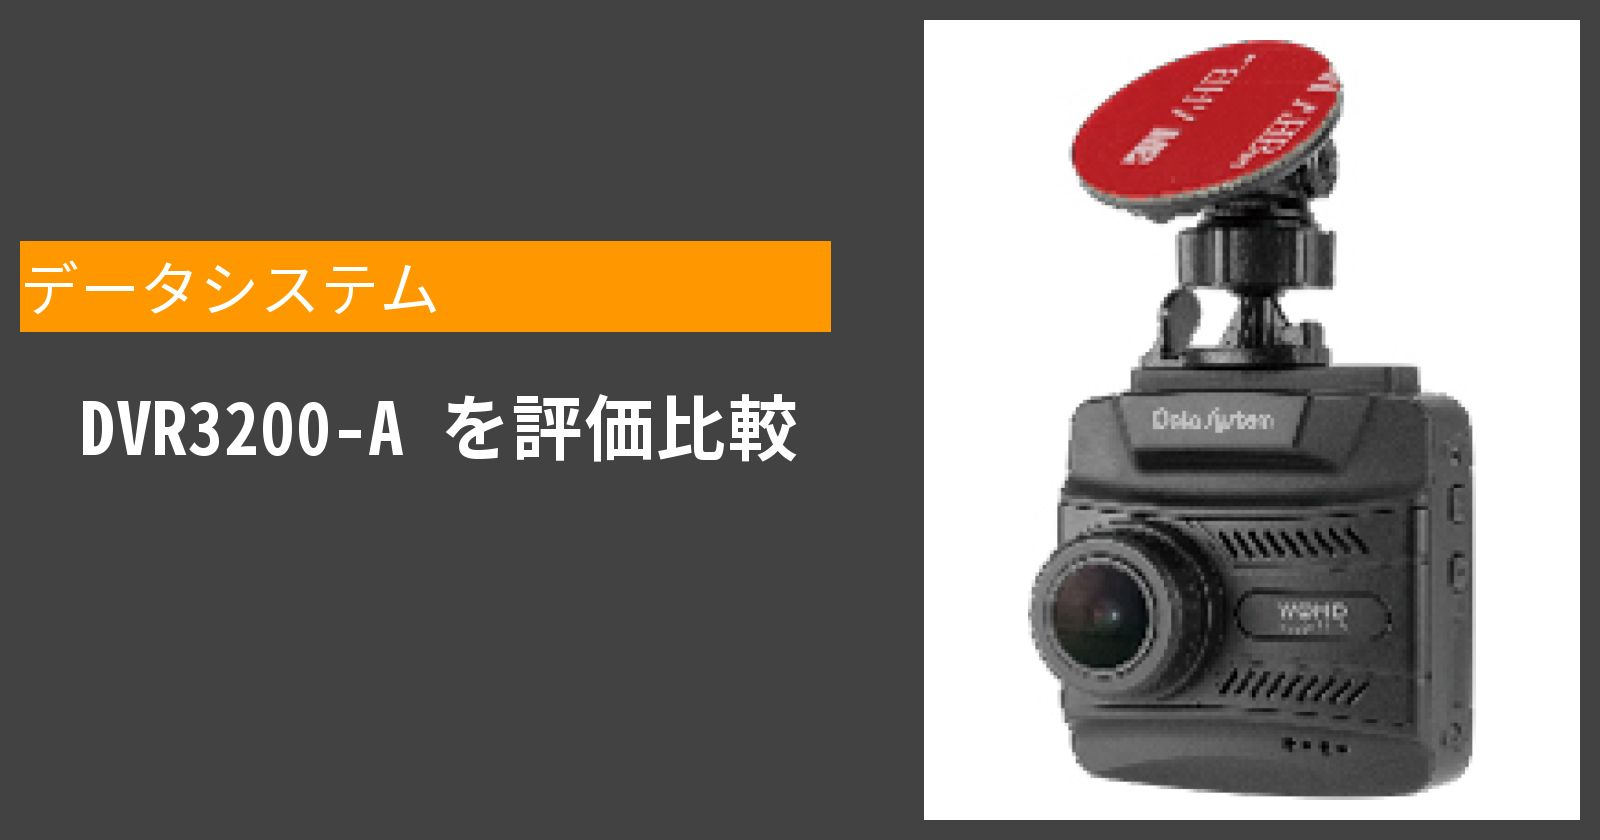 DVR3200-Aを徹底評価